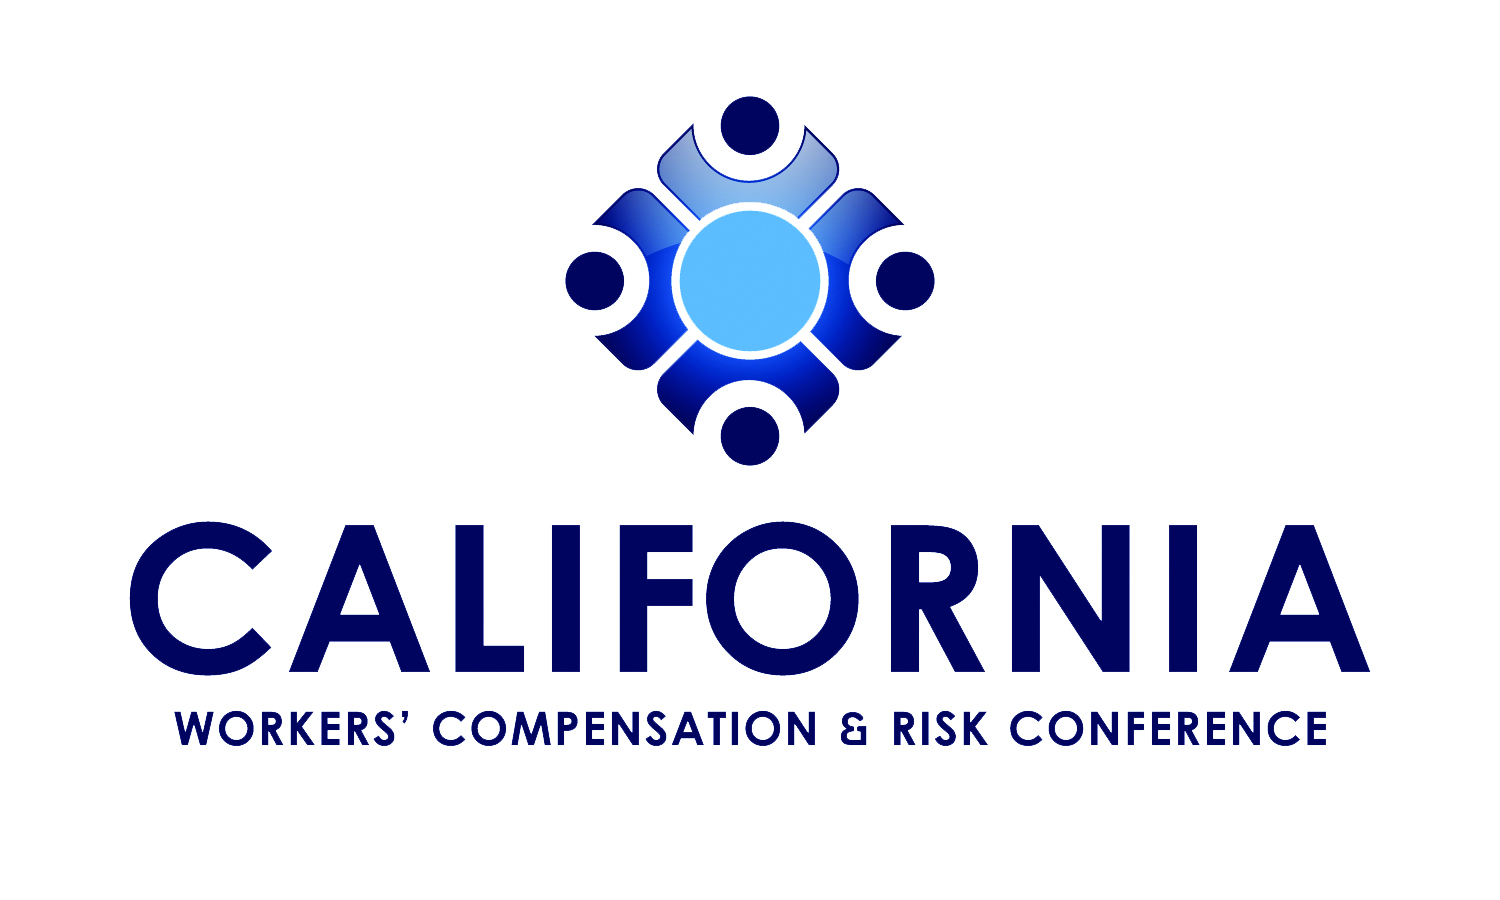 2017 CWC & Risk Conference Announces Motivational Keynote